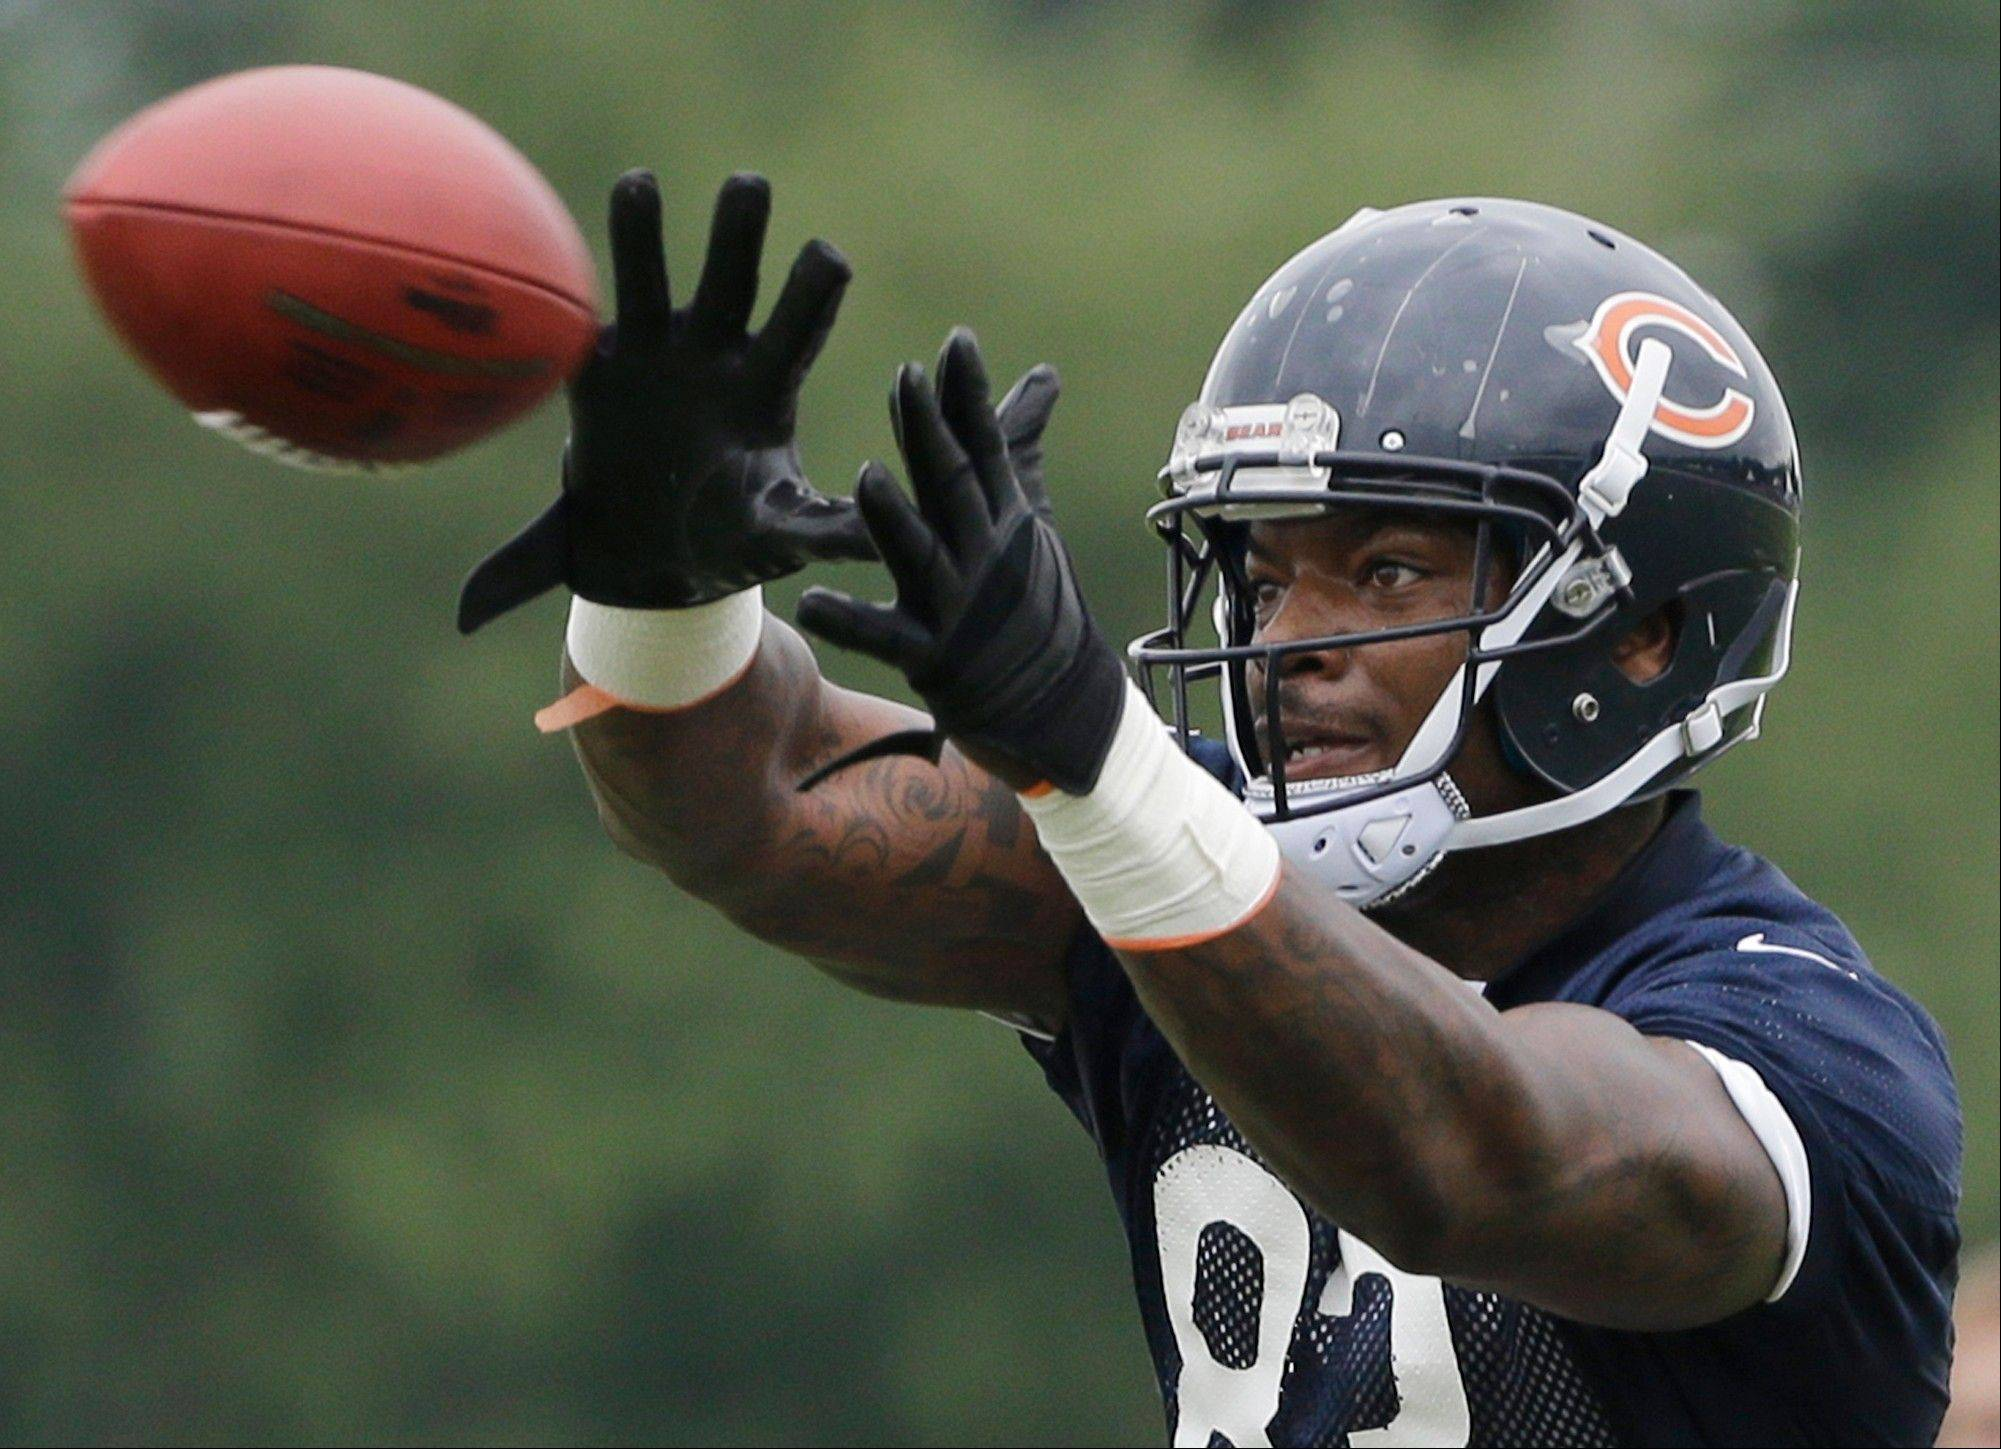 Bears tight end Martellus Bennett makes a catch during training camp in Bourbonnais.